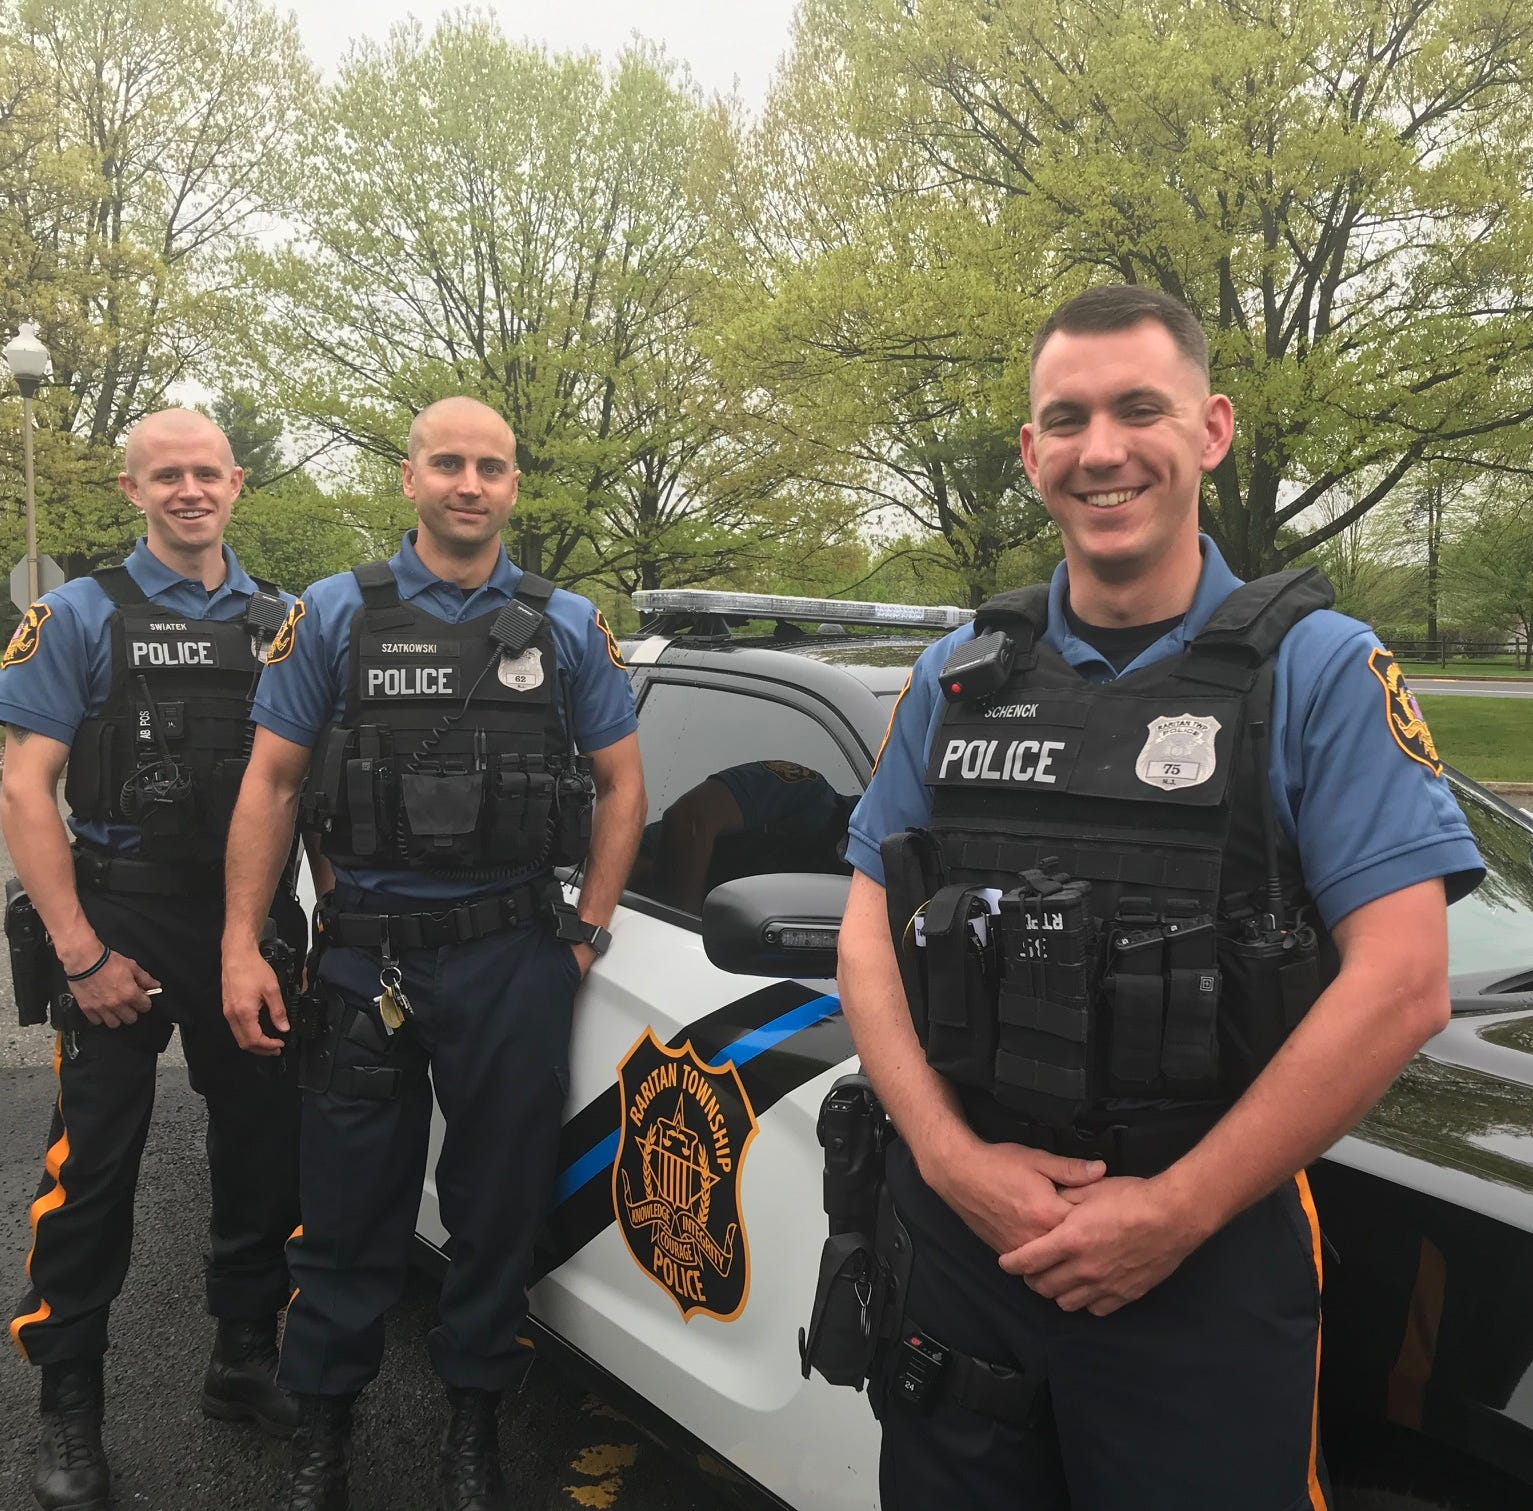 Hero Raritan Township police officers to be honored for disabled woman's fiery rescue